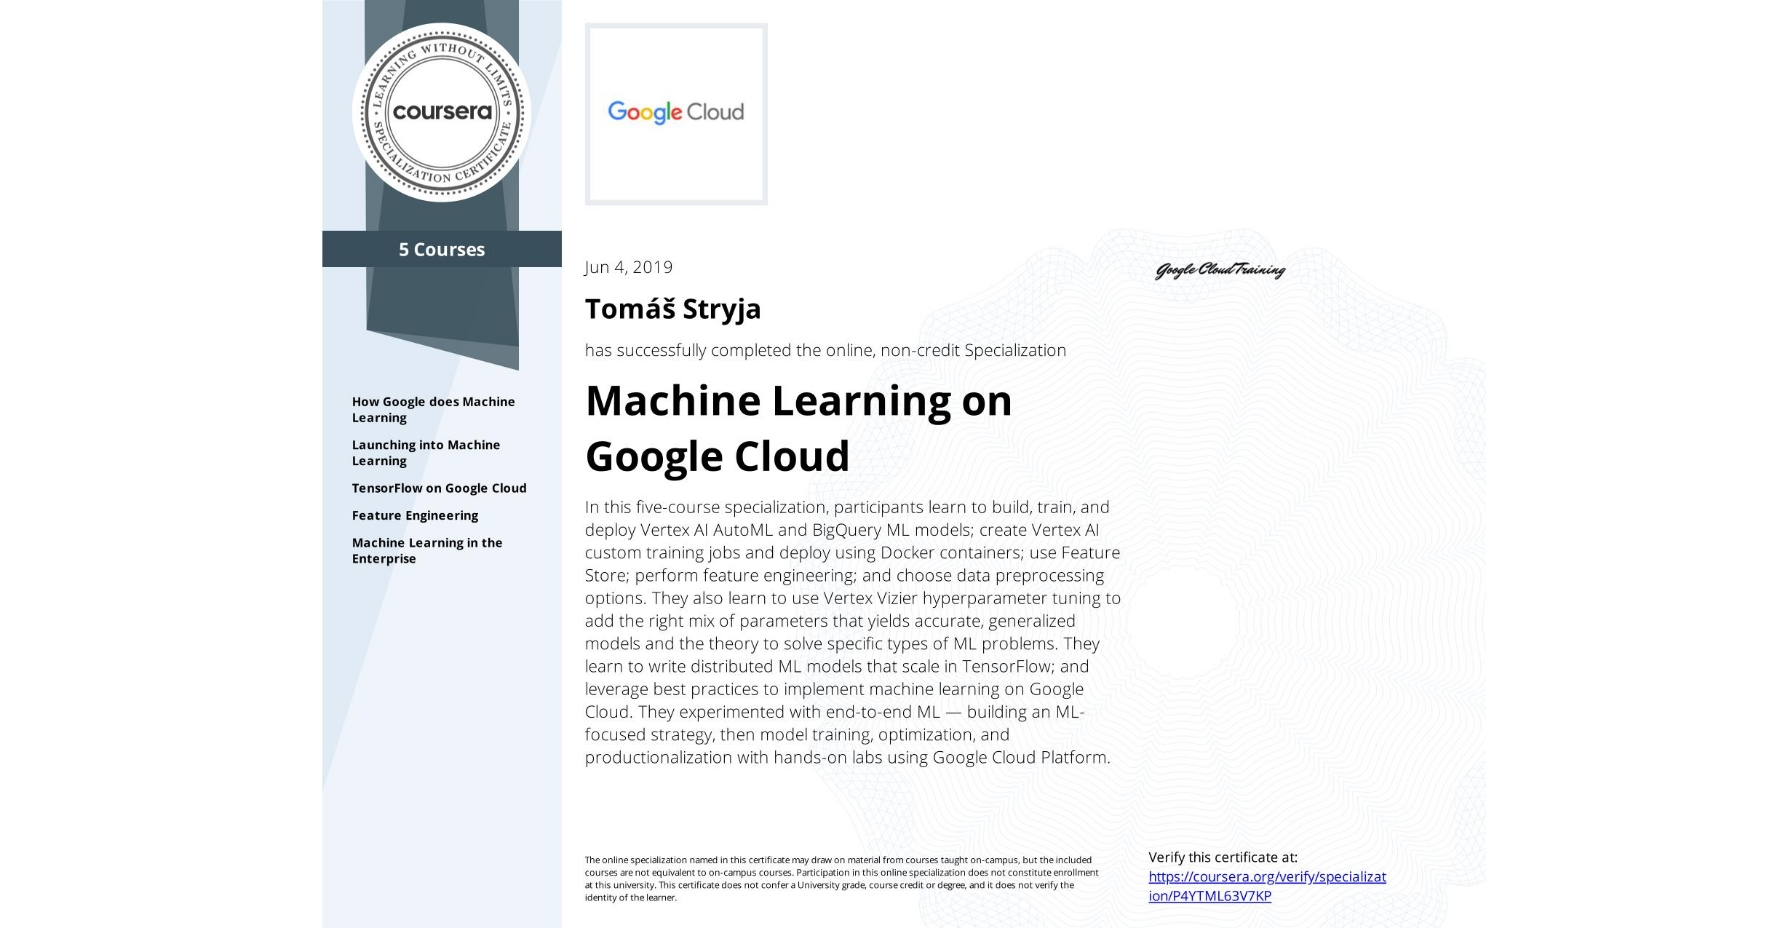 View certificate for Tomáš Stryja, Machine Learning with TensorFlow on Google Cloud Platform, offered through Coursera. This five-course online specialization teaches course participants how to write distributed machine learning models that scale in Tensorflow, scale out the training of those models. and offer high-performance predictions. Also featured is the conversion of raw data to features in a way that allows ML to learn important characteristics from the data and bring human insight to bear on the problem. It also teaches how to incorporate the right mix of parameters that yields accurate, generalized models and knowledge of the theory to solve specific types of ML problems. Course participants experimented with end-to-end ML, starting from building an ML-focused strategy and progressing into model training, optimization, and productionalization with hands-on labs using Google Cloud Platform.